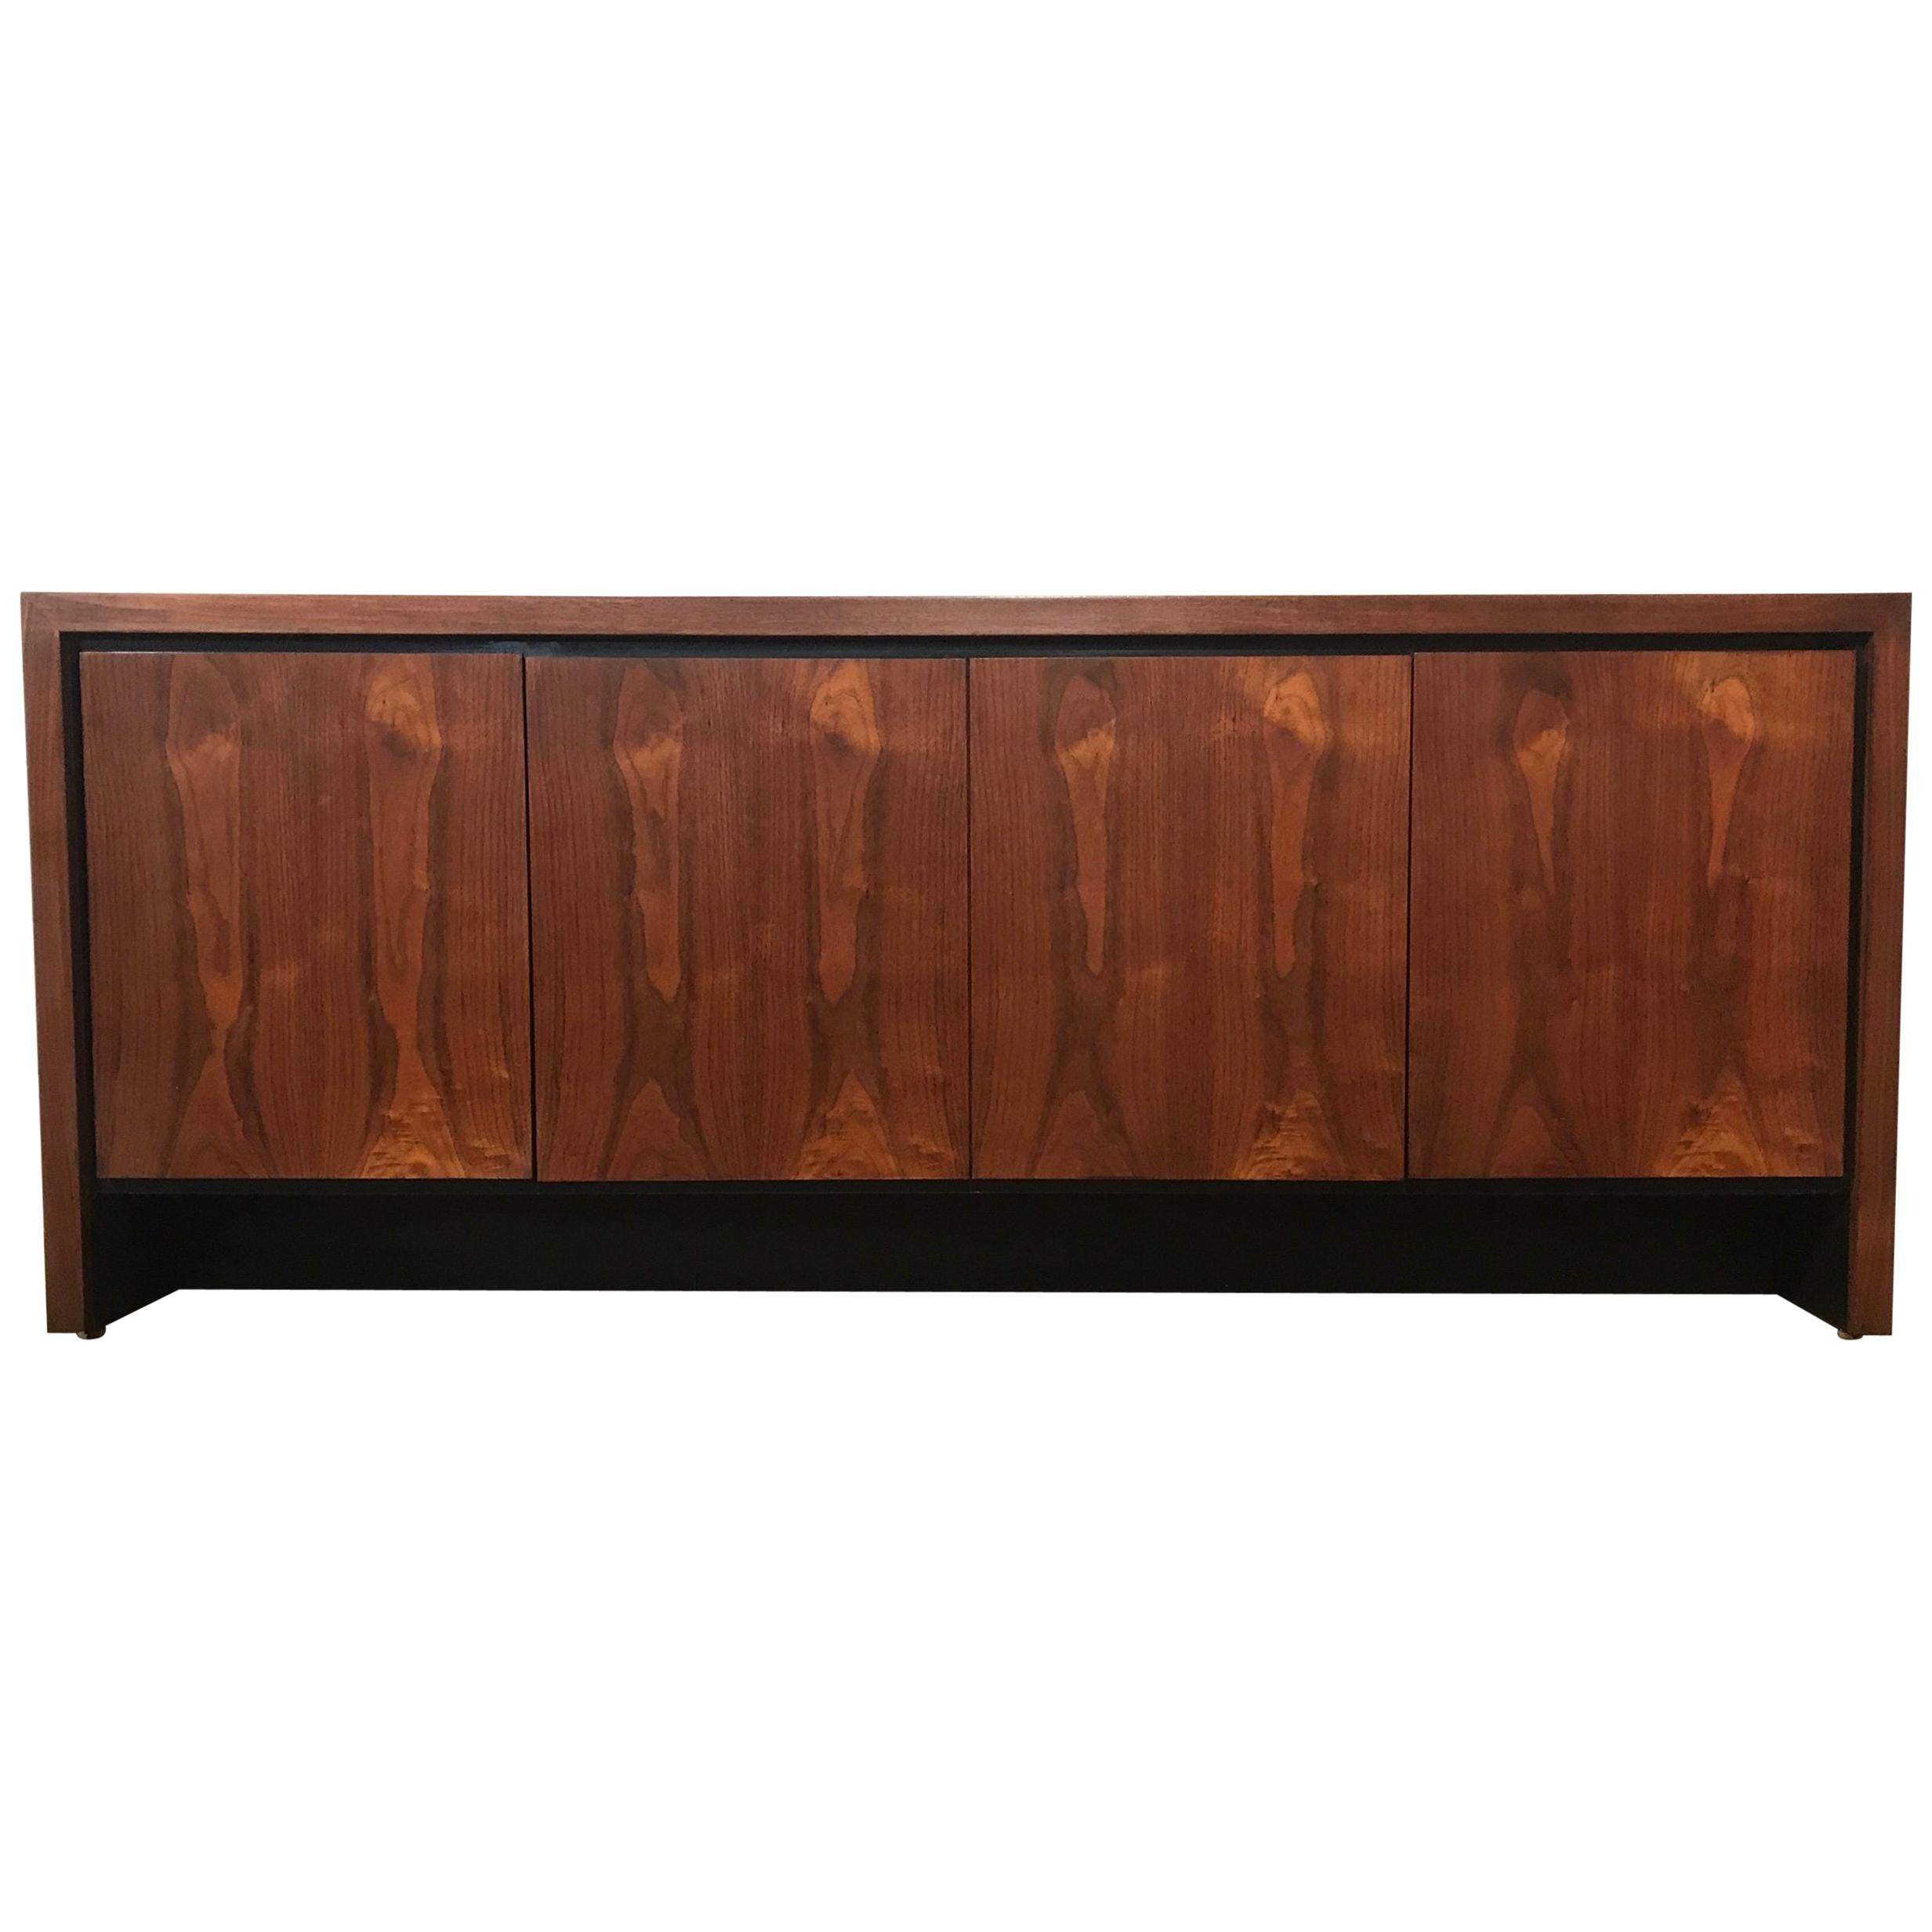 Charmant Mid Century Modern Walnut Buffet / Credenza By Dillingham For Sale